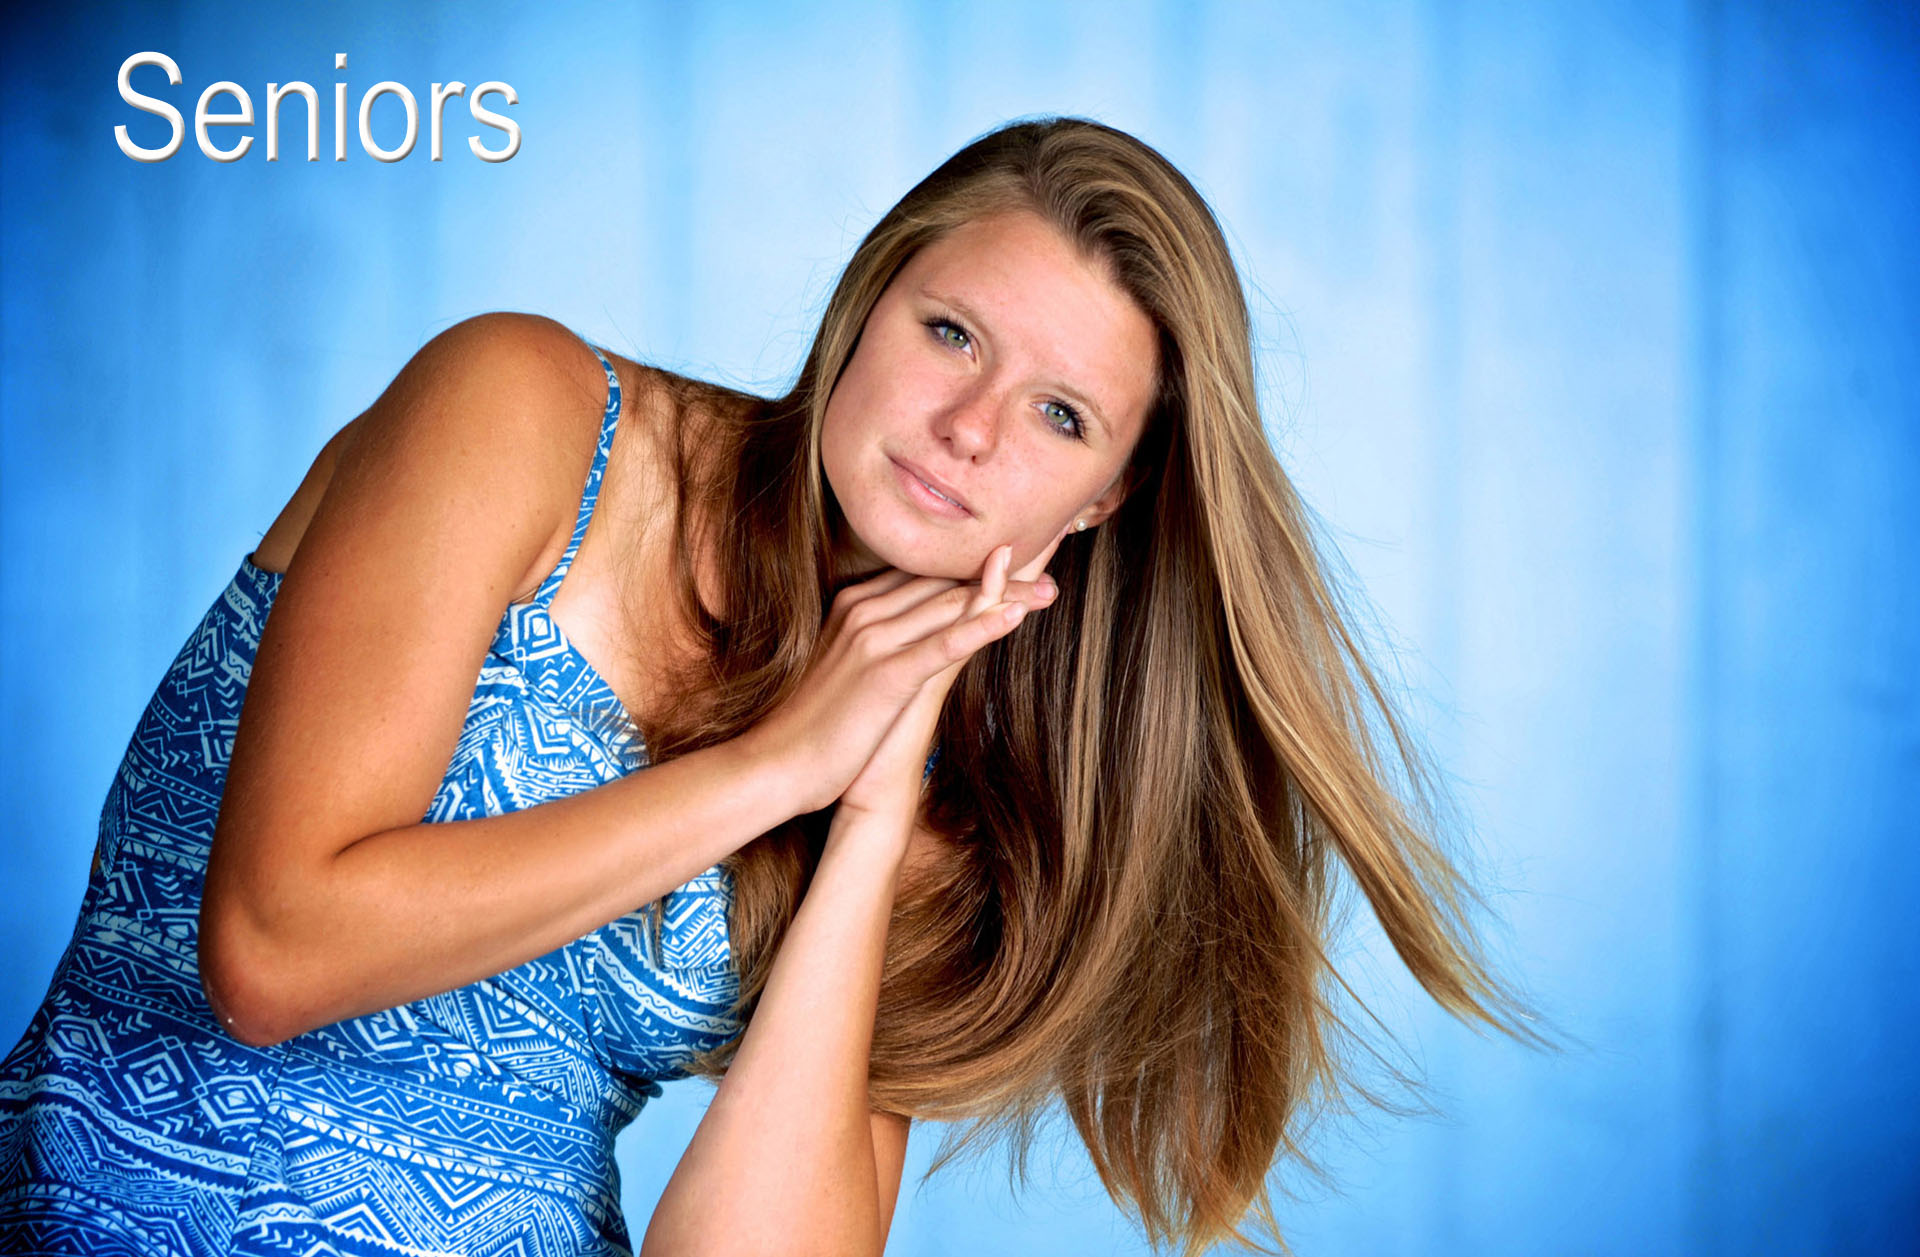 Some Oakland County, Michigan seniors like more glamorous senior photos. Creative affordable and the best senior photography I can is what sets me apart from other Metro Detroit, Michigan senior photographers.